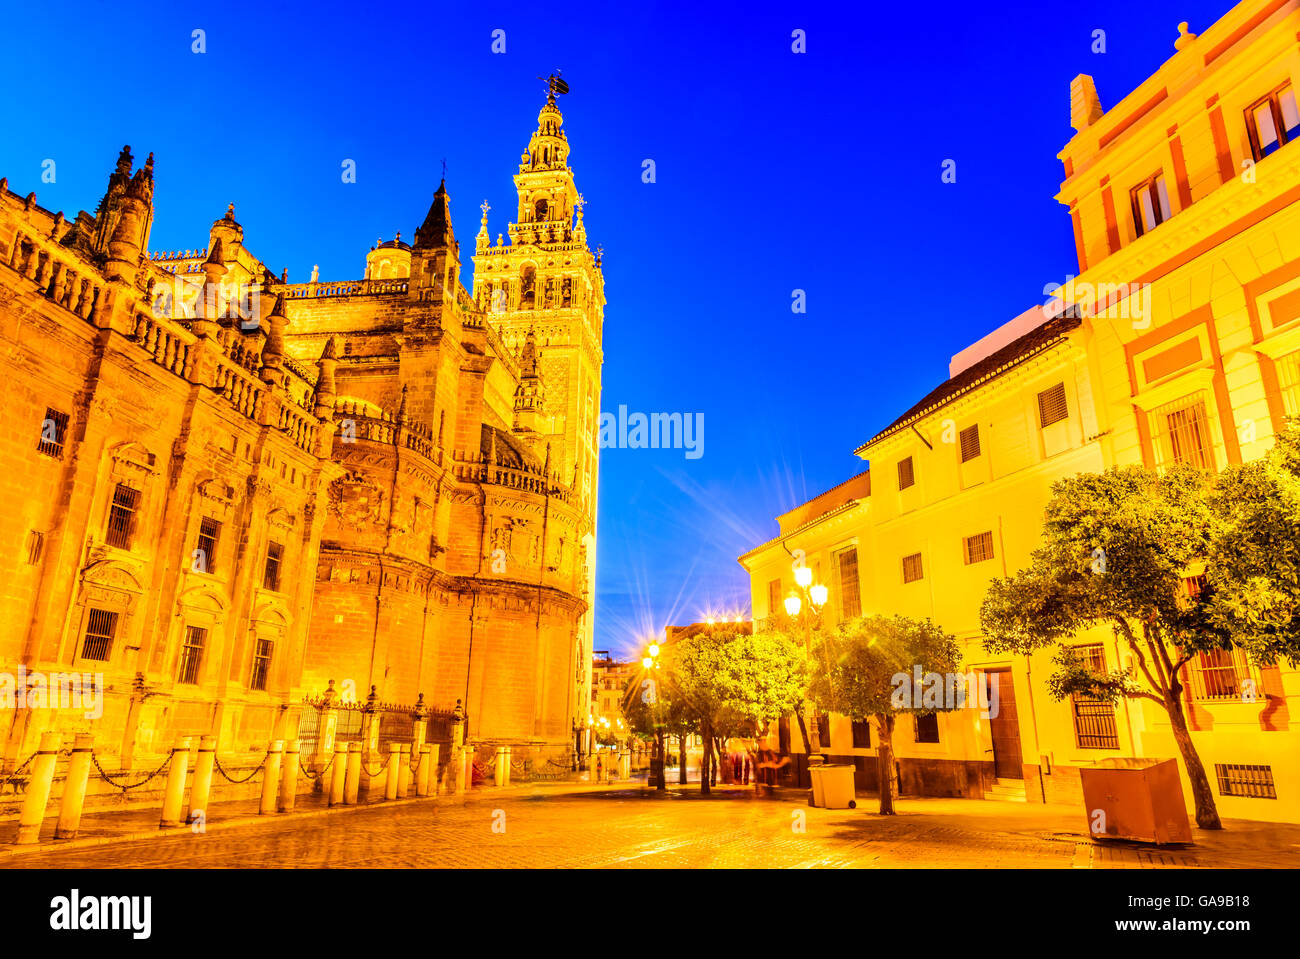 Seville, Andalusia, Spain. Cityscape twilight image with Santa Maria de la Sede Cathedral and Giralda. - Stock Image